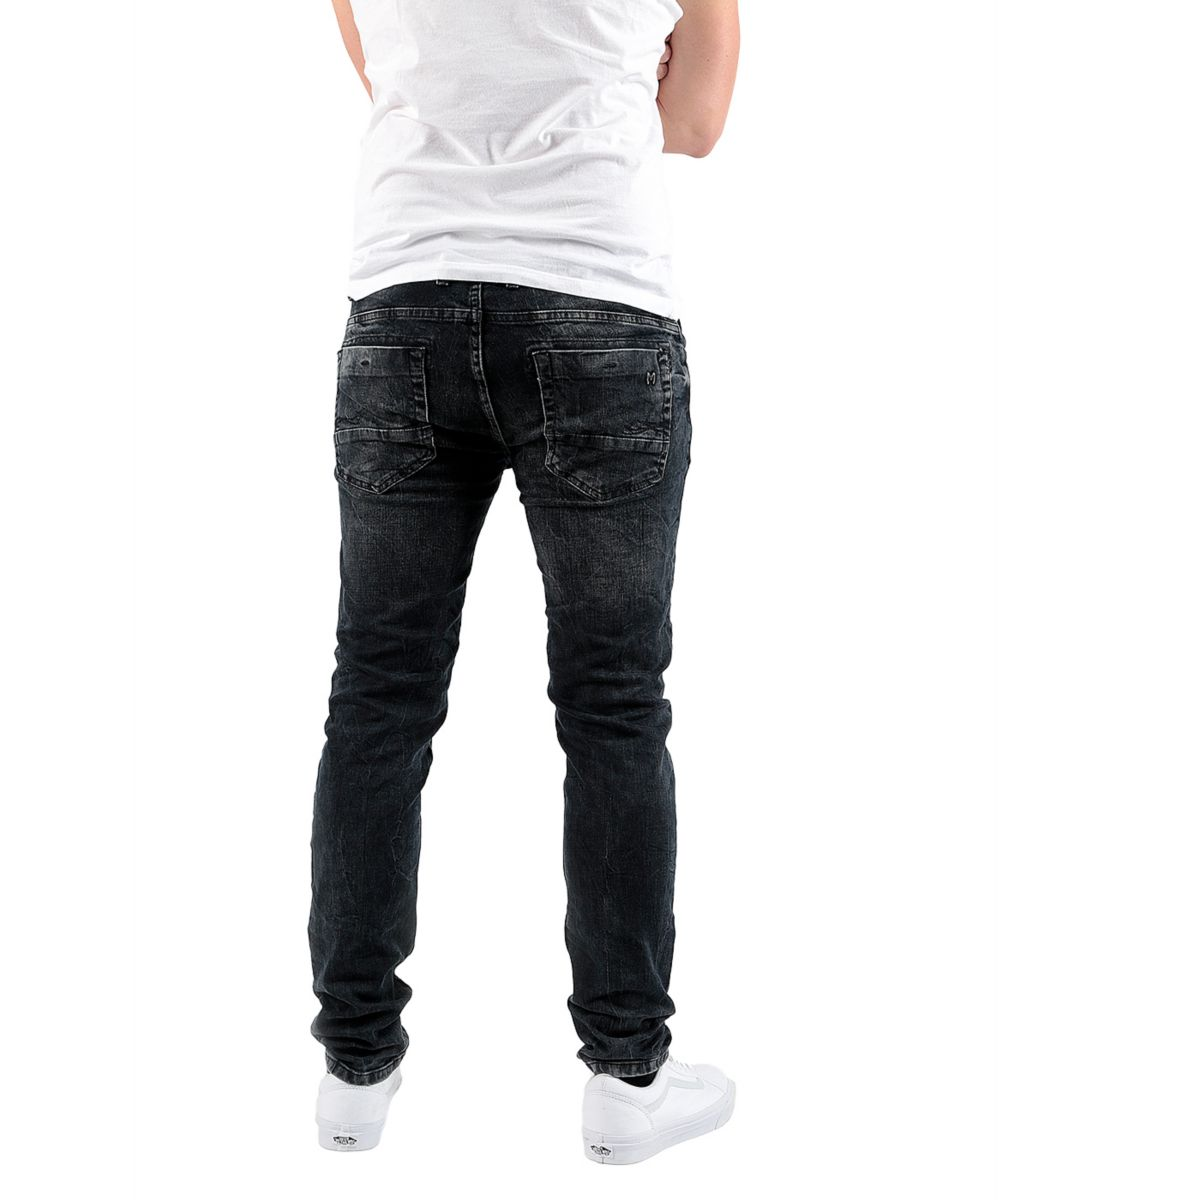 M.O.D MIRACLE OF DENIM Jeanshose im 5-Pocket-Stil